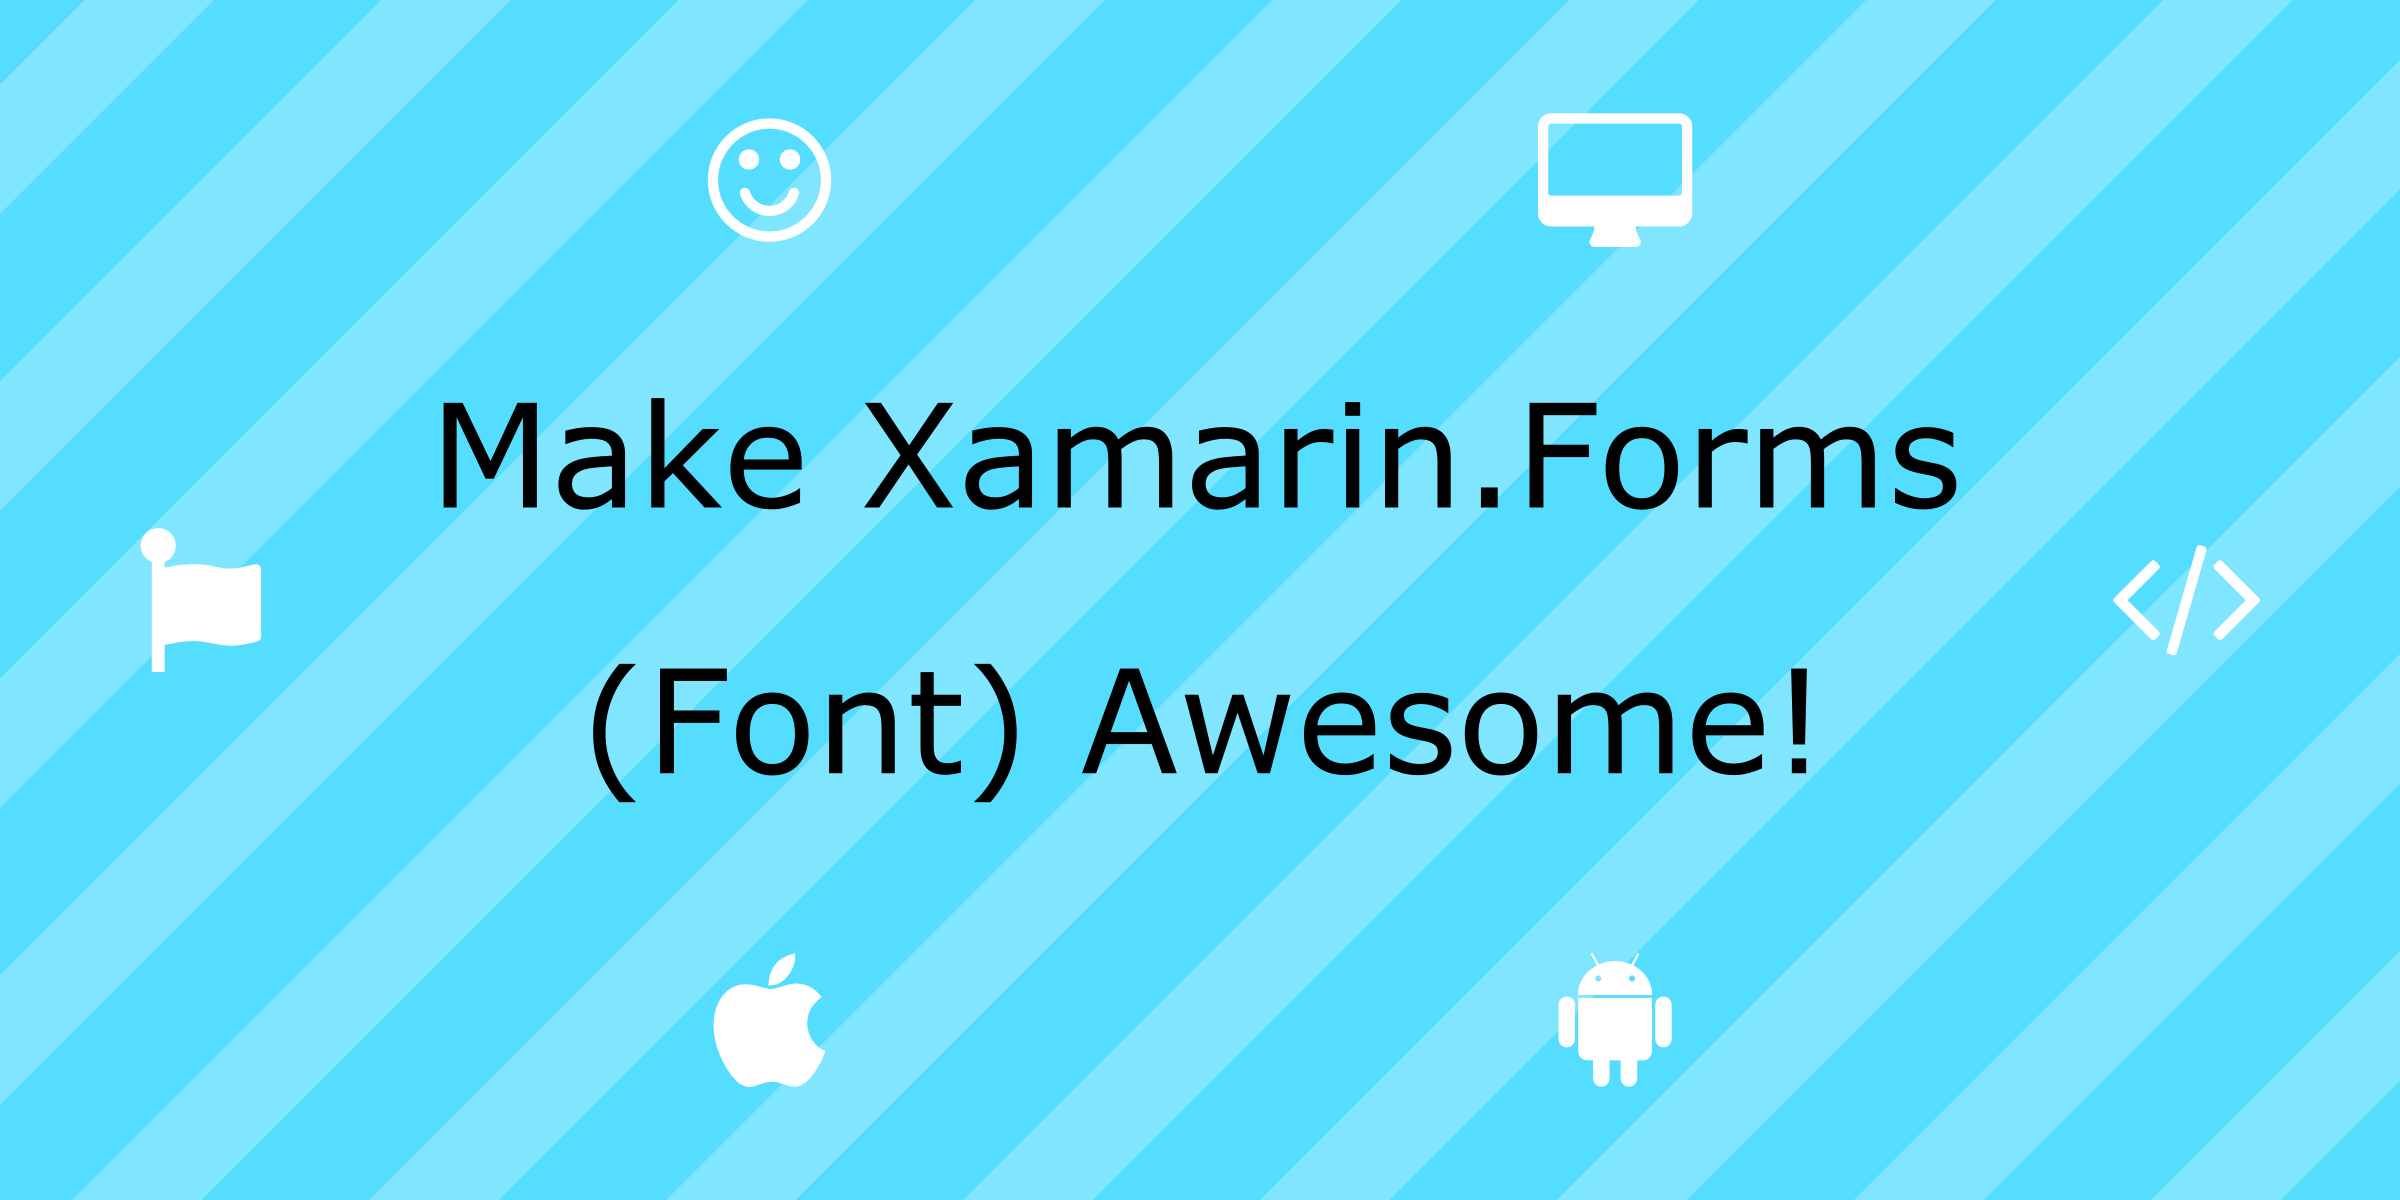 Font Awesome Icons in Xamarin Forms - HangZone